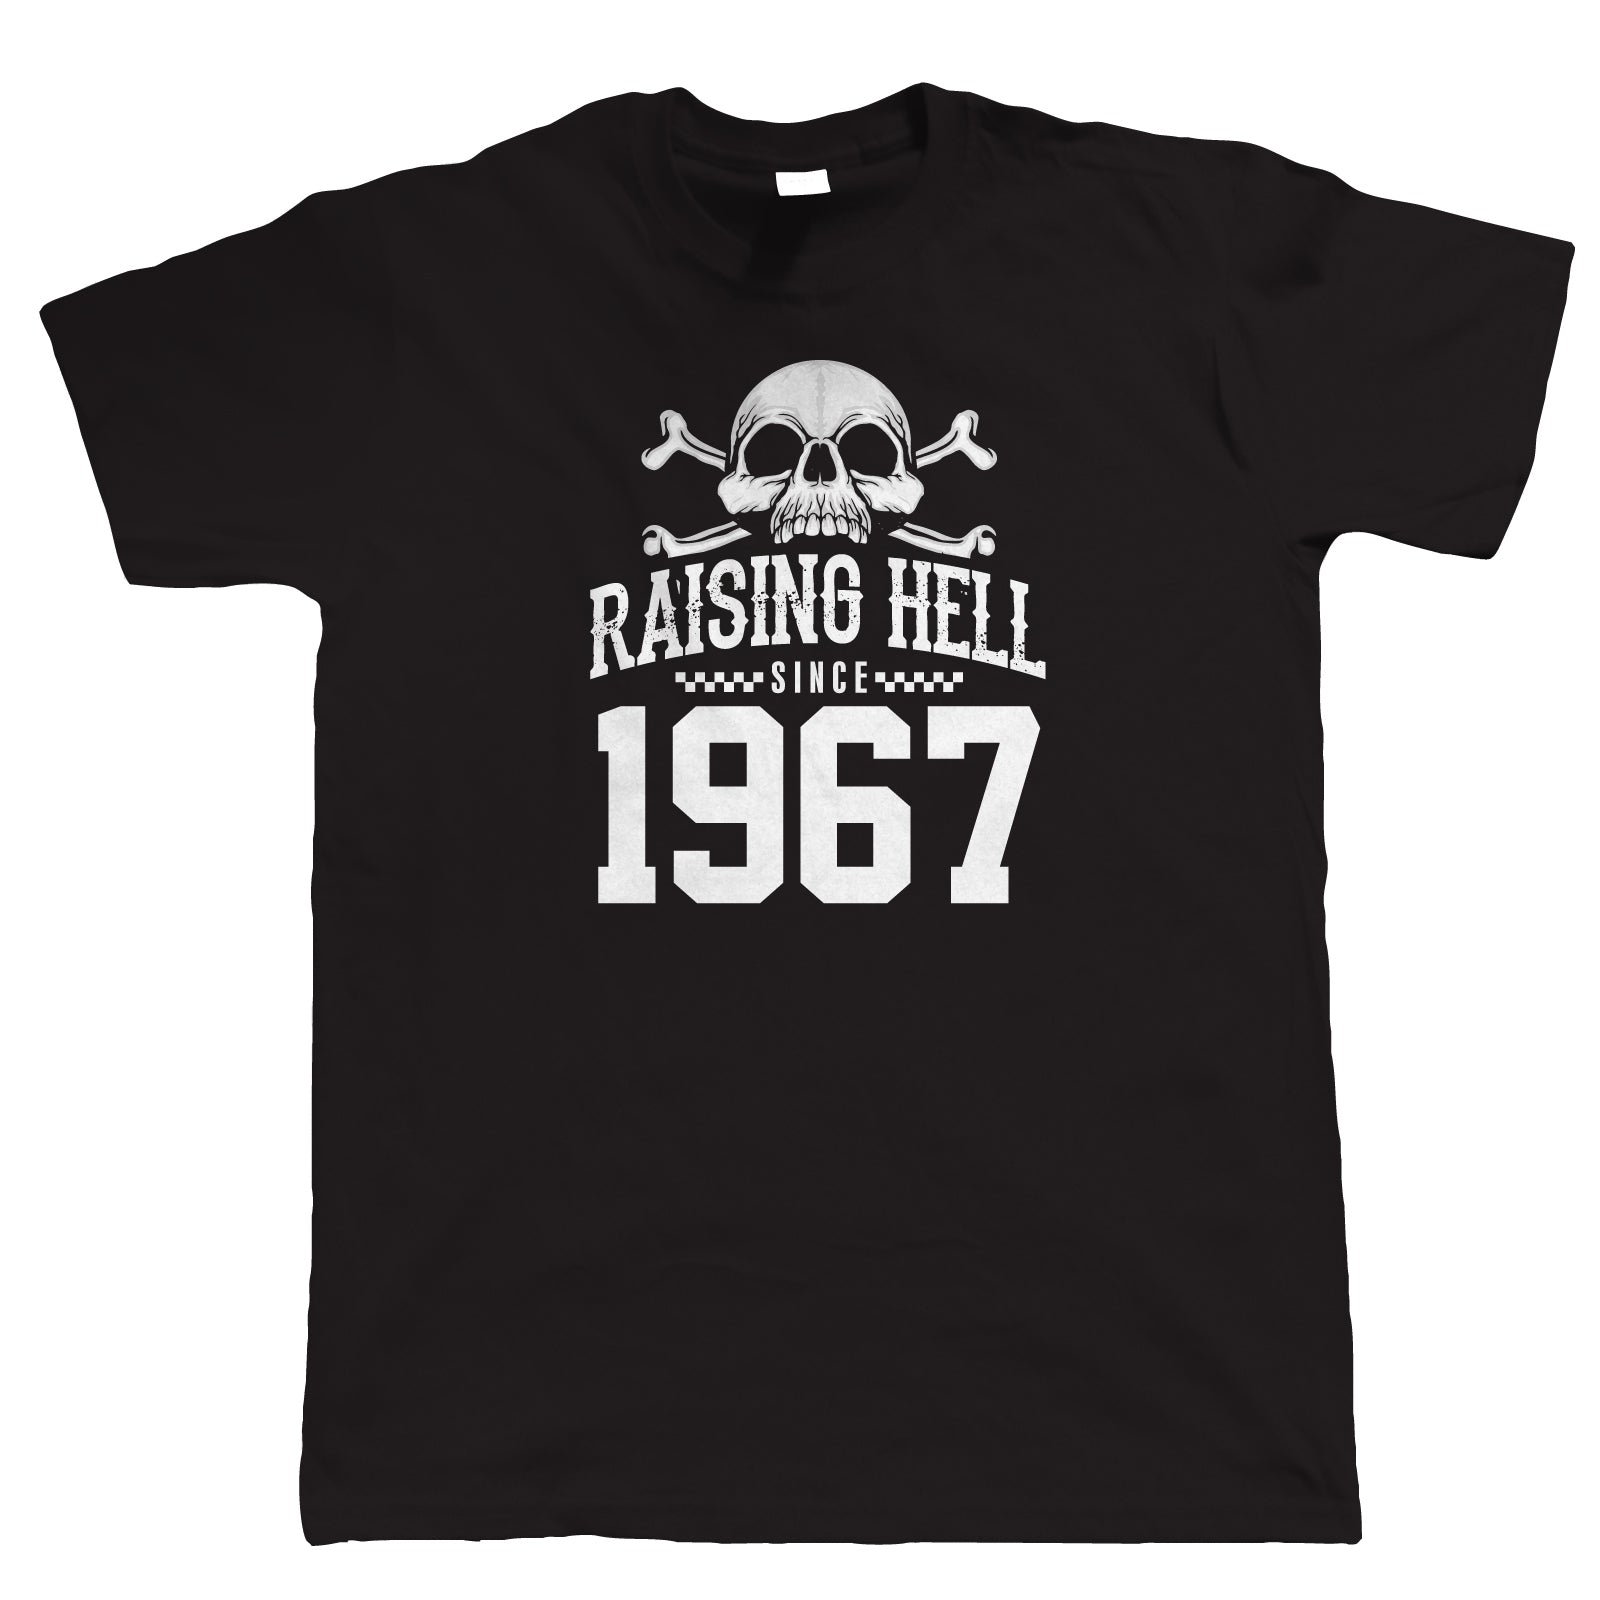 Raising Hell Since 1967, Mens Biker T-Shirt, 50th Birthday Gift